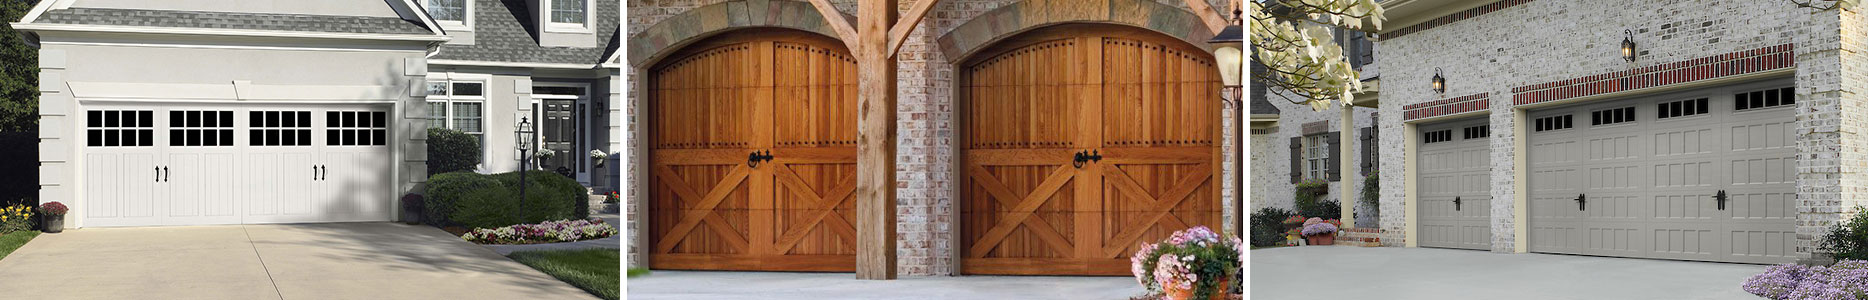 Precision Garage Doors Westchester County NY | New Garage Doors | Installation & Precision Garage Doors Westchester County NY | New Garage Doors ...